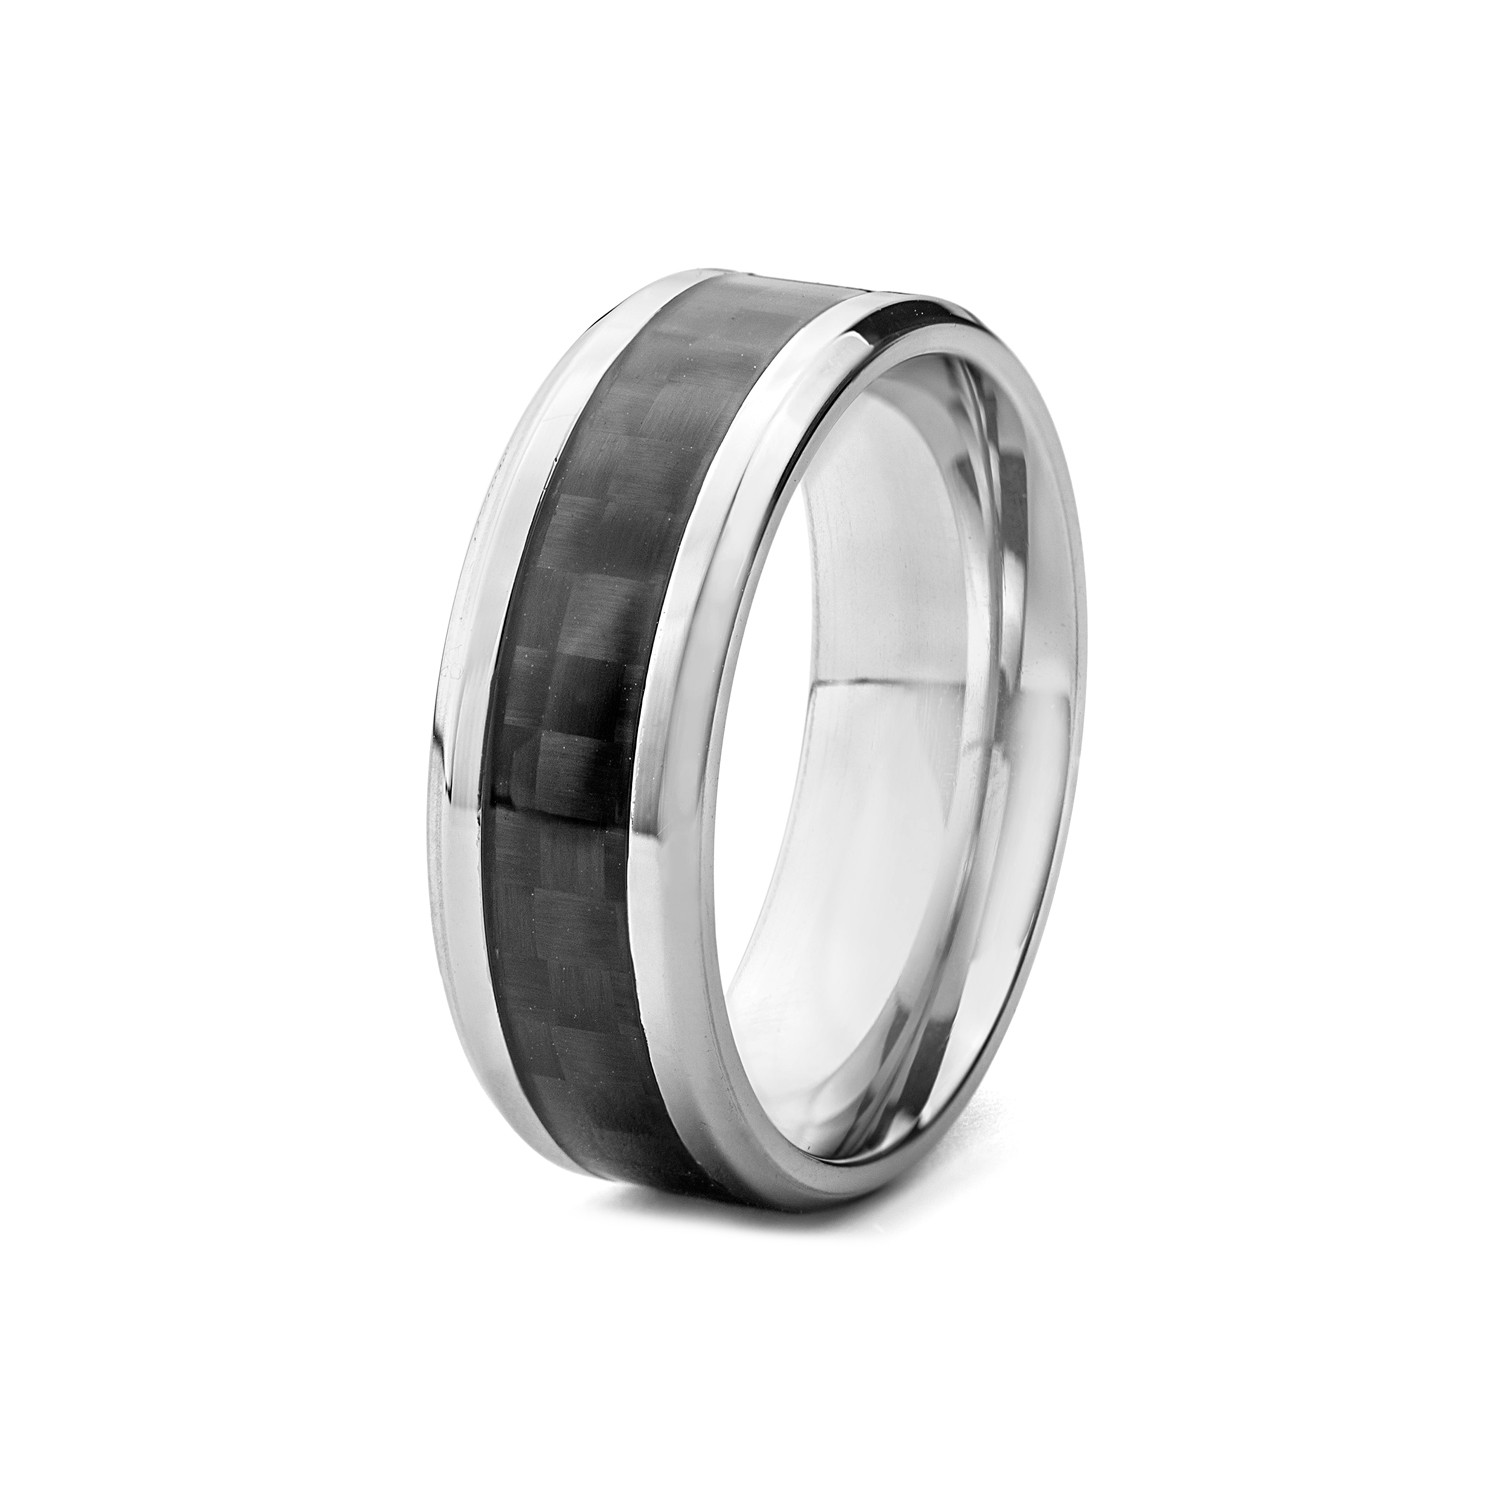 Carbon Fiber Diamontrigue Jewelry: Ring // Beveled Edge With Black Carbon Fiber Inlay (Size 7